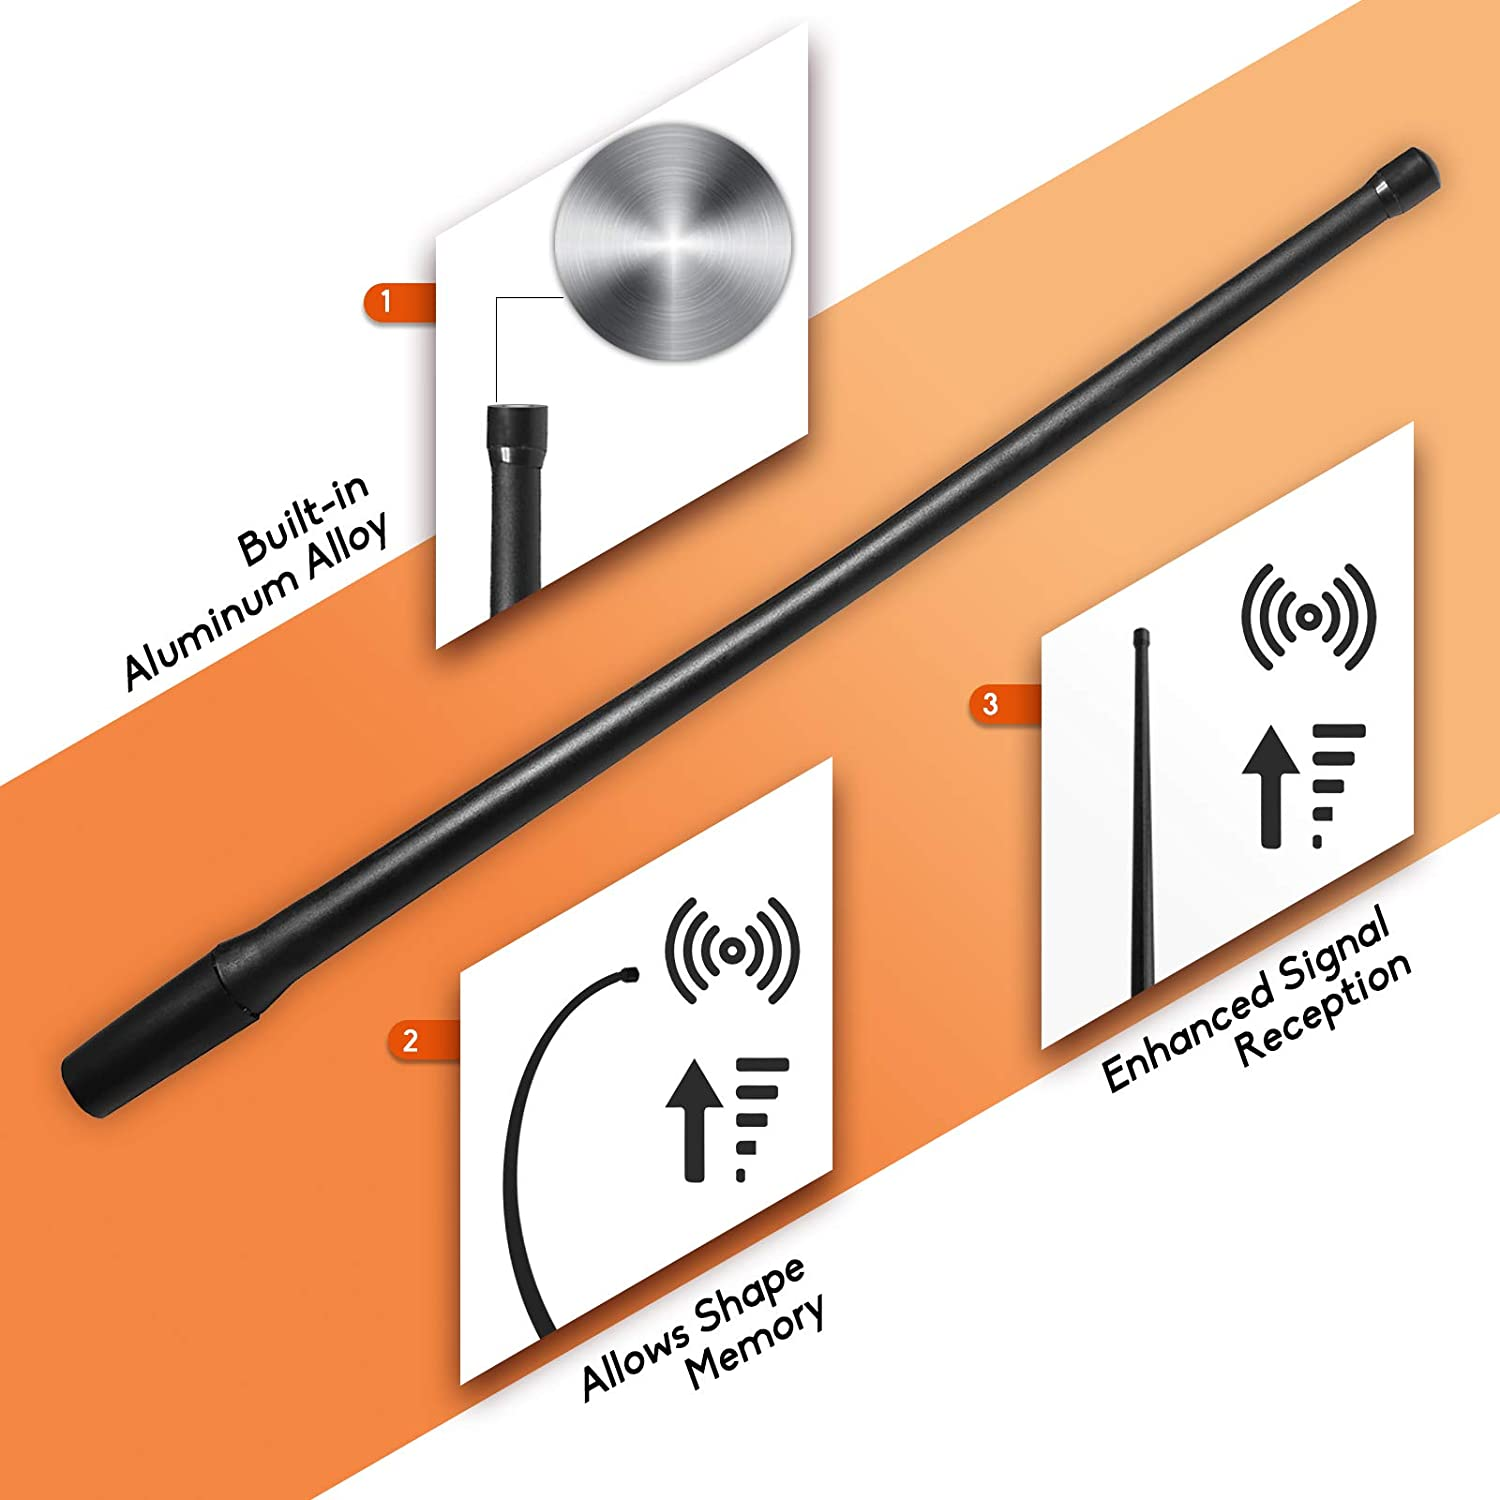 Optimized FM//AM Reception DeepRoar Replacement Antenna for Chevy Avalanche 2001-2006 13 Inch PL01 Black